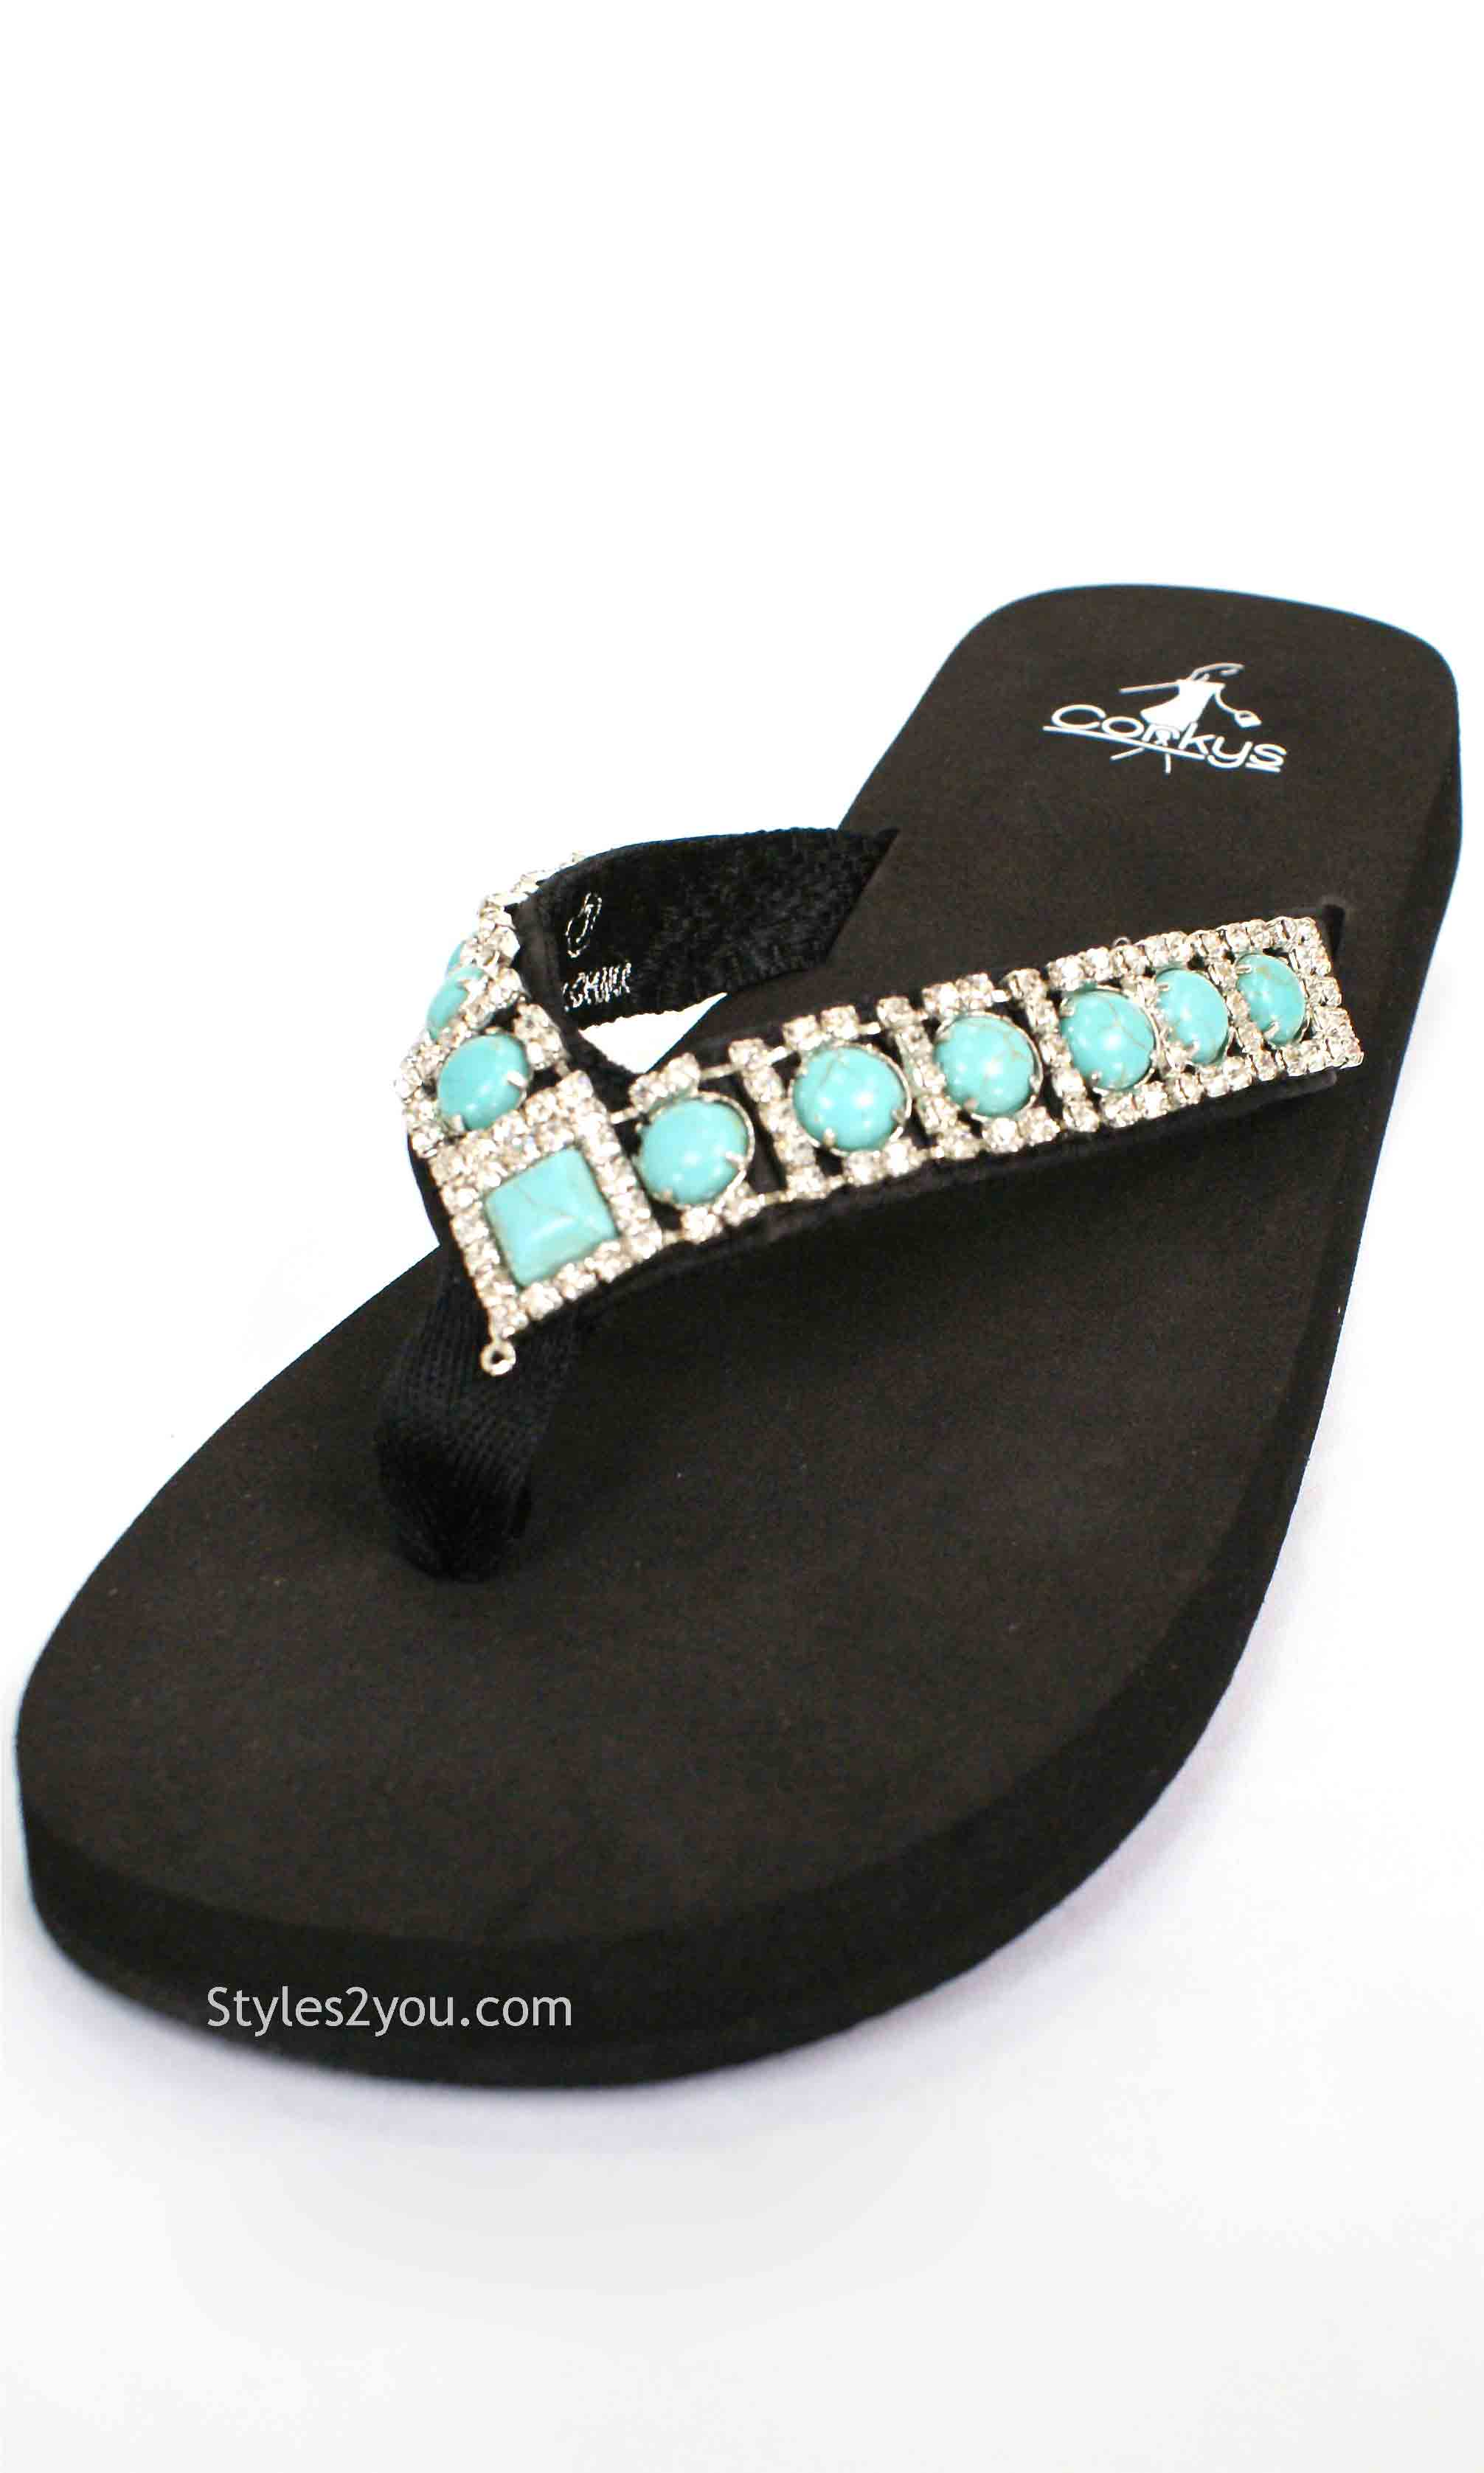 9b19d4a34b1d Northwest Sandal In Turquoise Corky s Women s Northwest Flip Flop Sandal In  Turquoise  208046TURQR Corkys Shoes Sandals  -  49.00